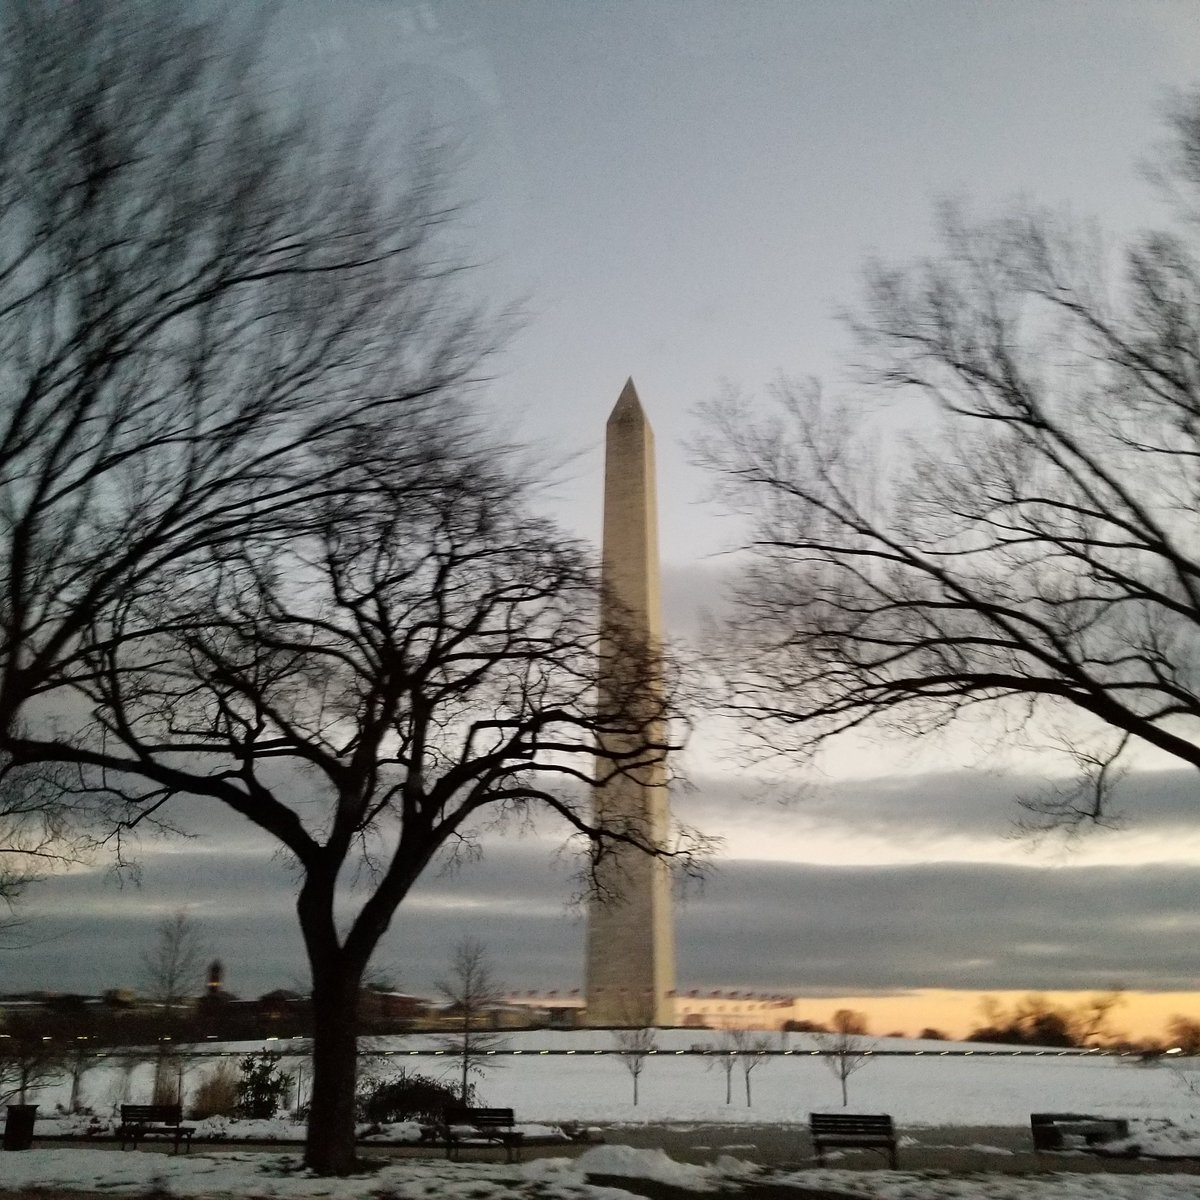 The peace of the Monument, on my way to an interview in Washington DC. Winter scenery https://t.co/RPYmQ8kYnM